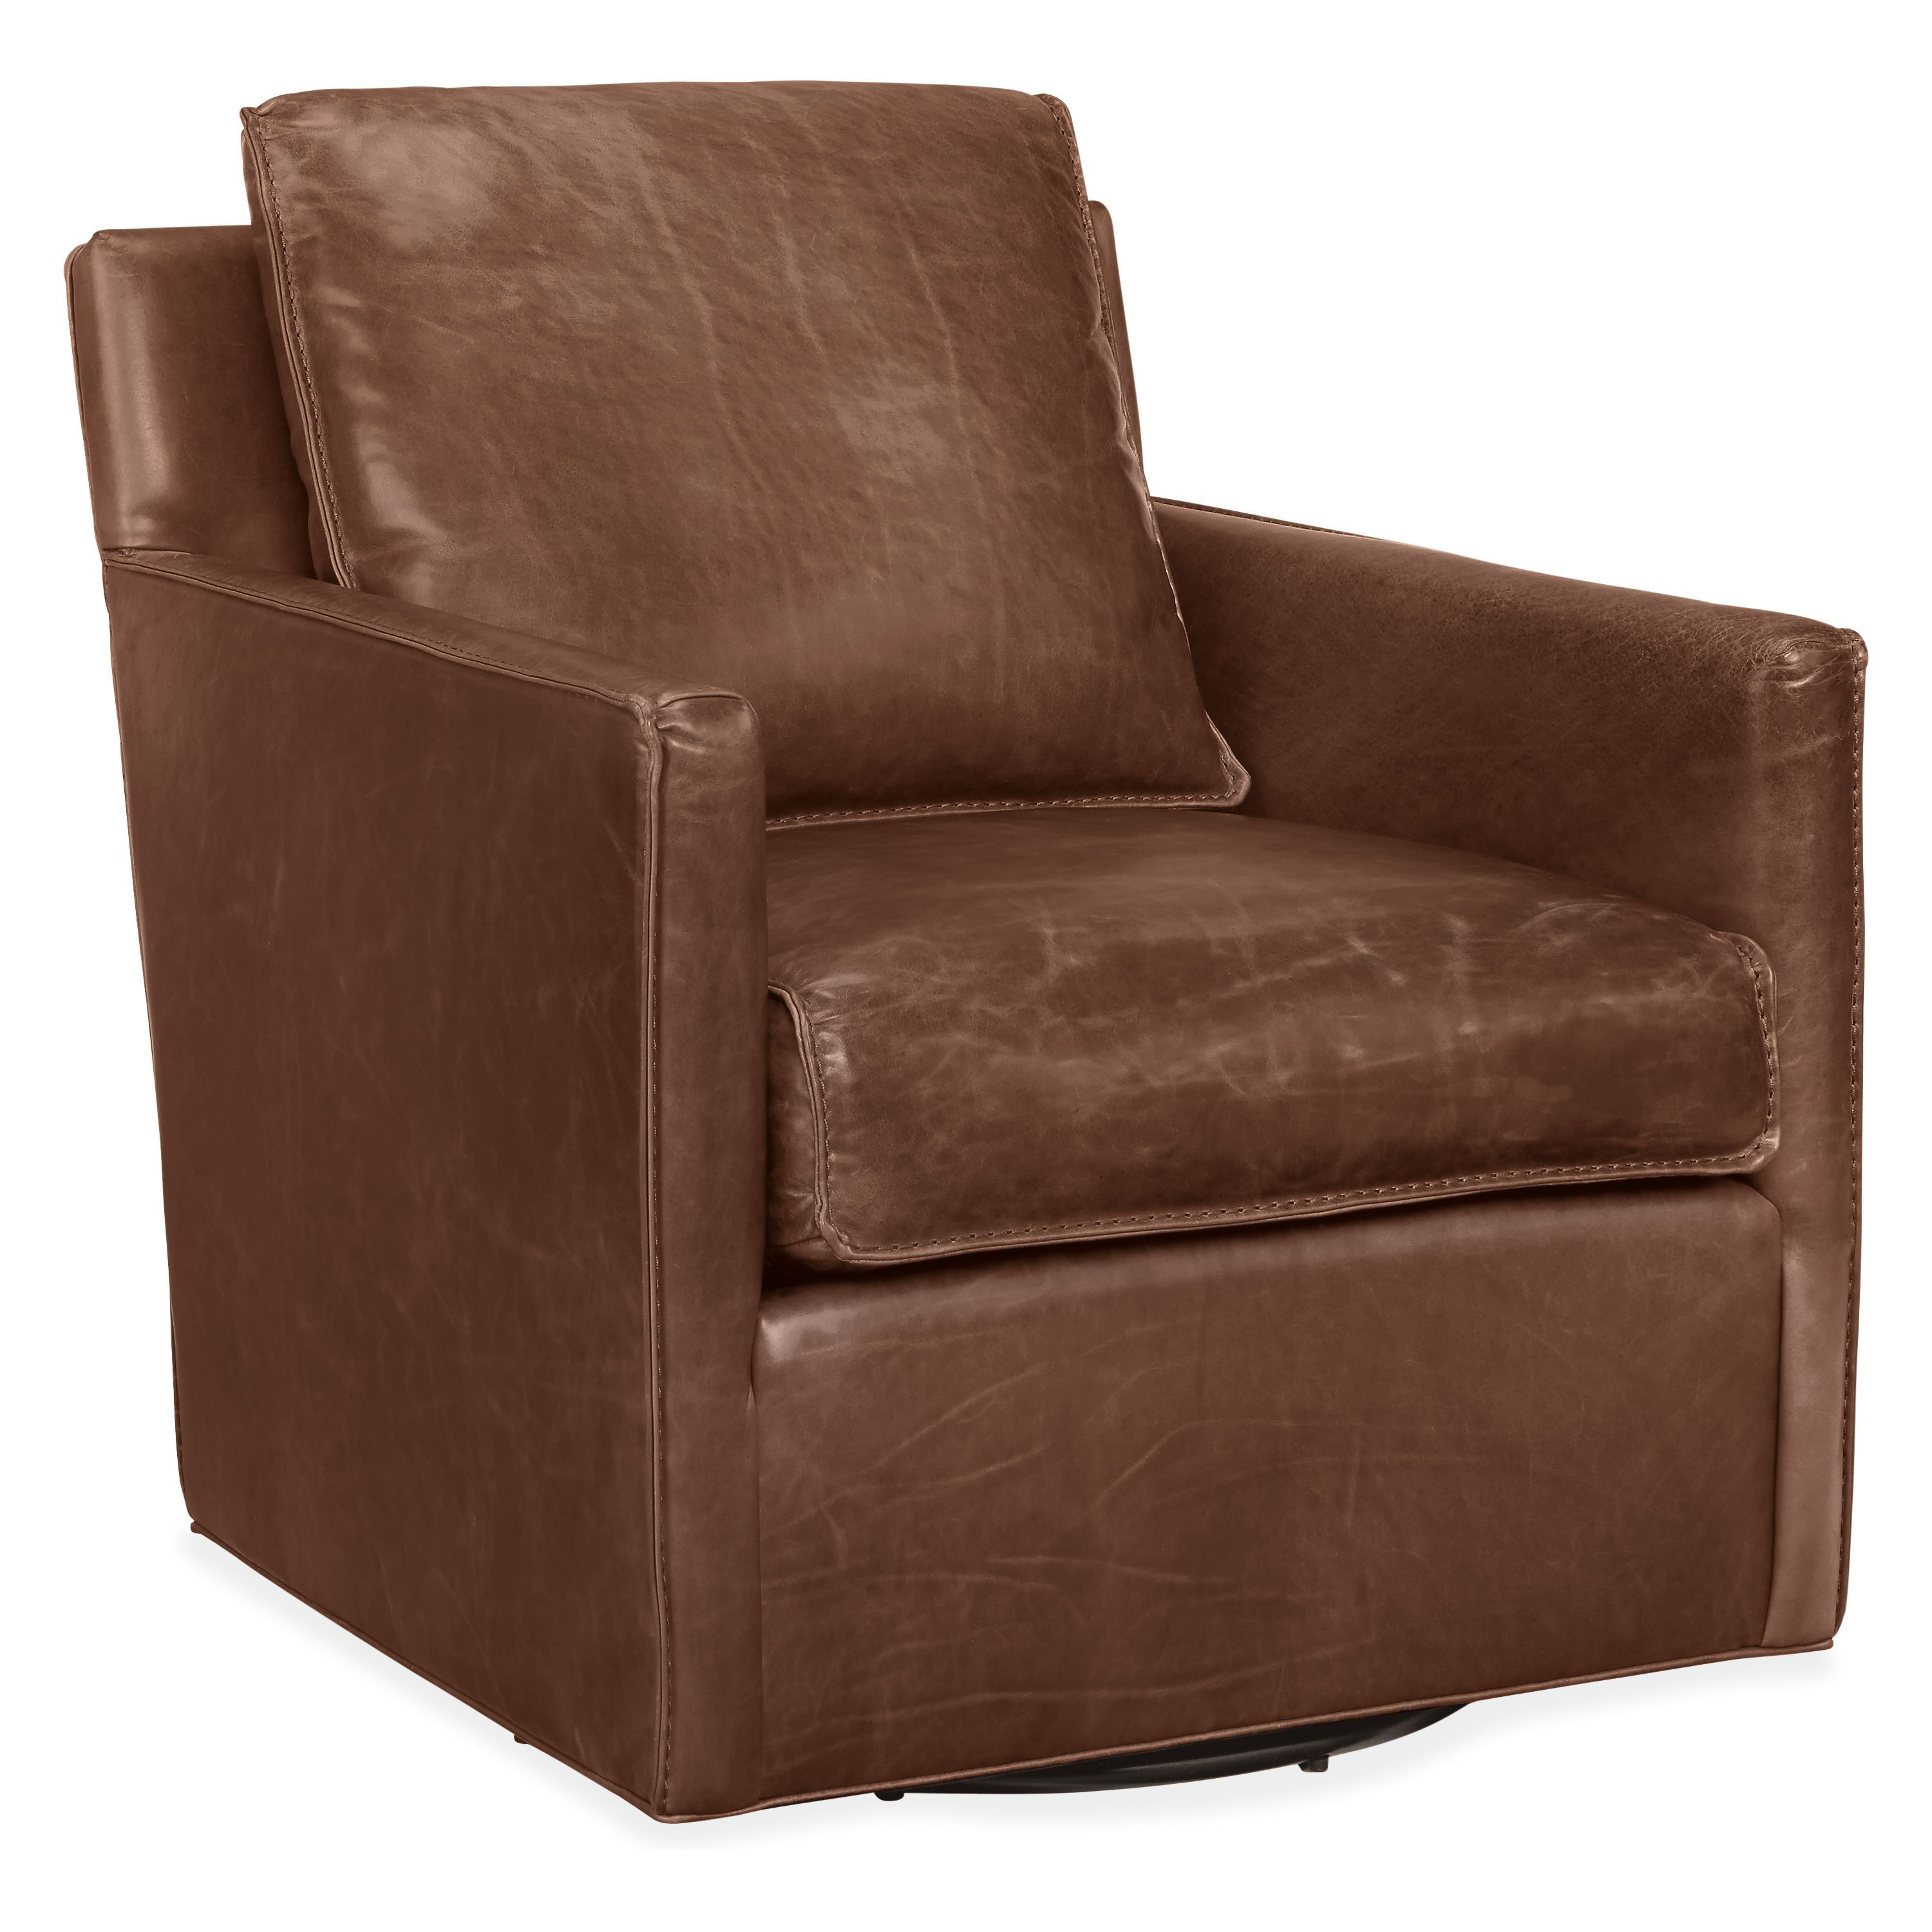 Bram Leather Swivel Chair Accent Chairs Modern Living